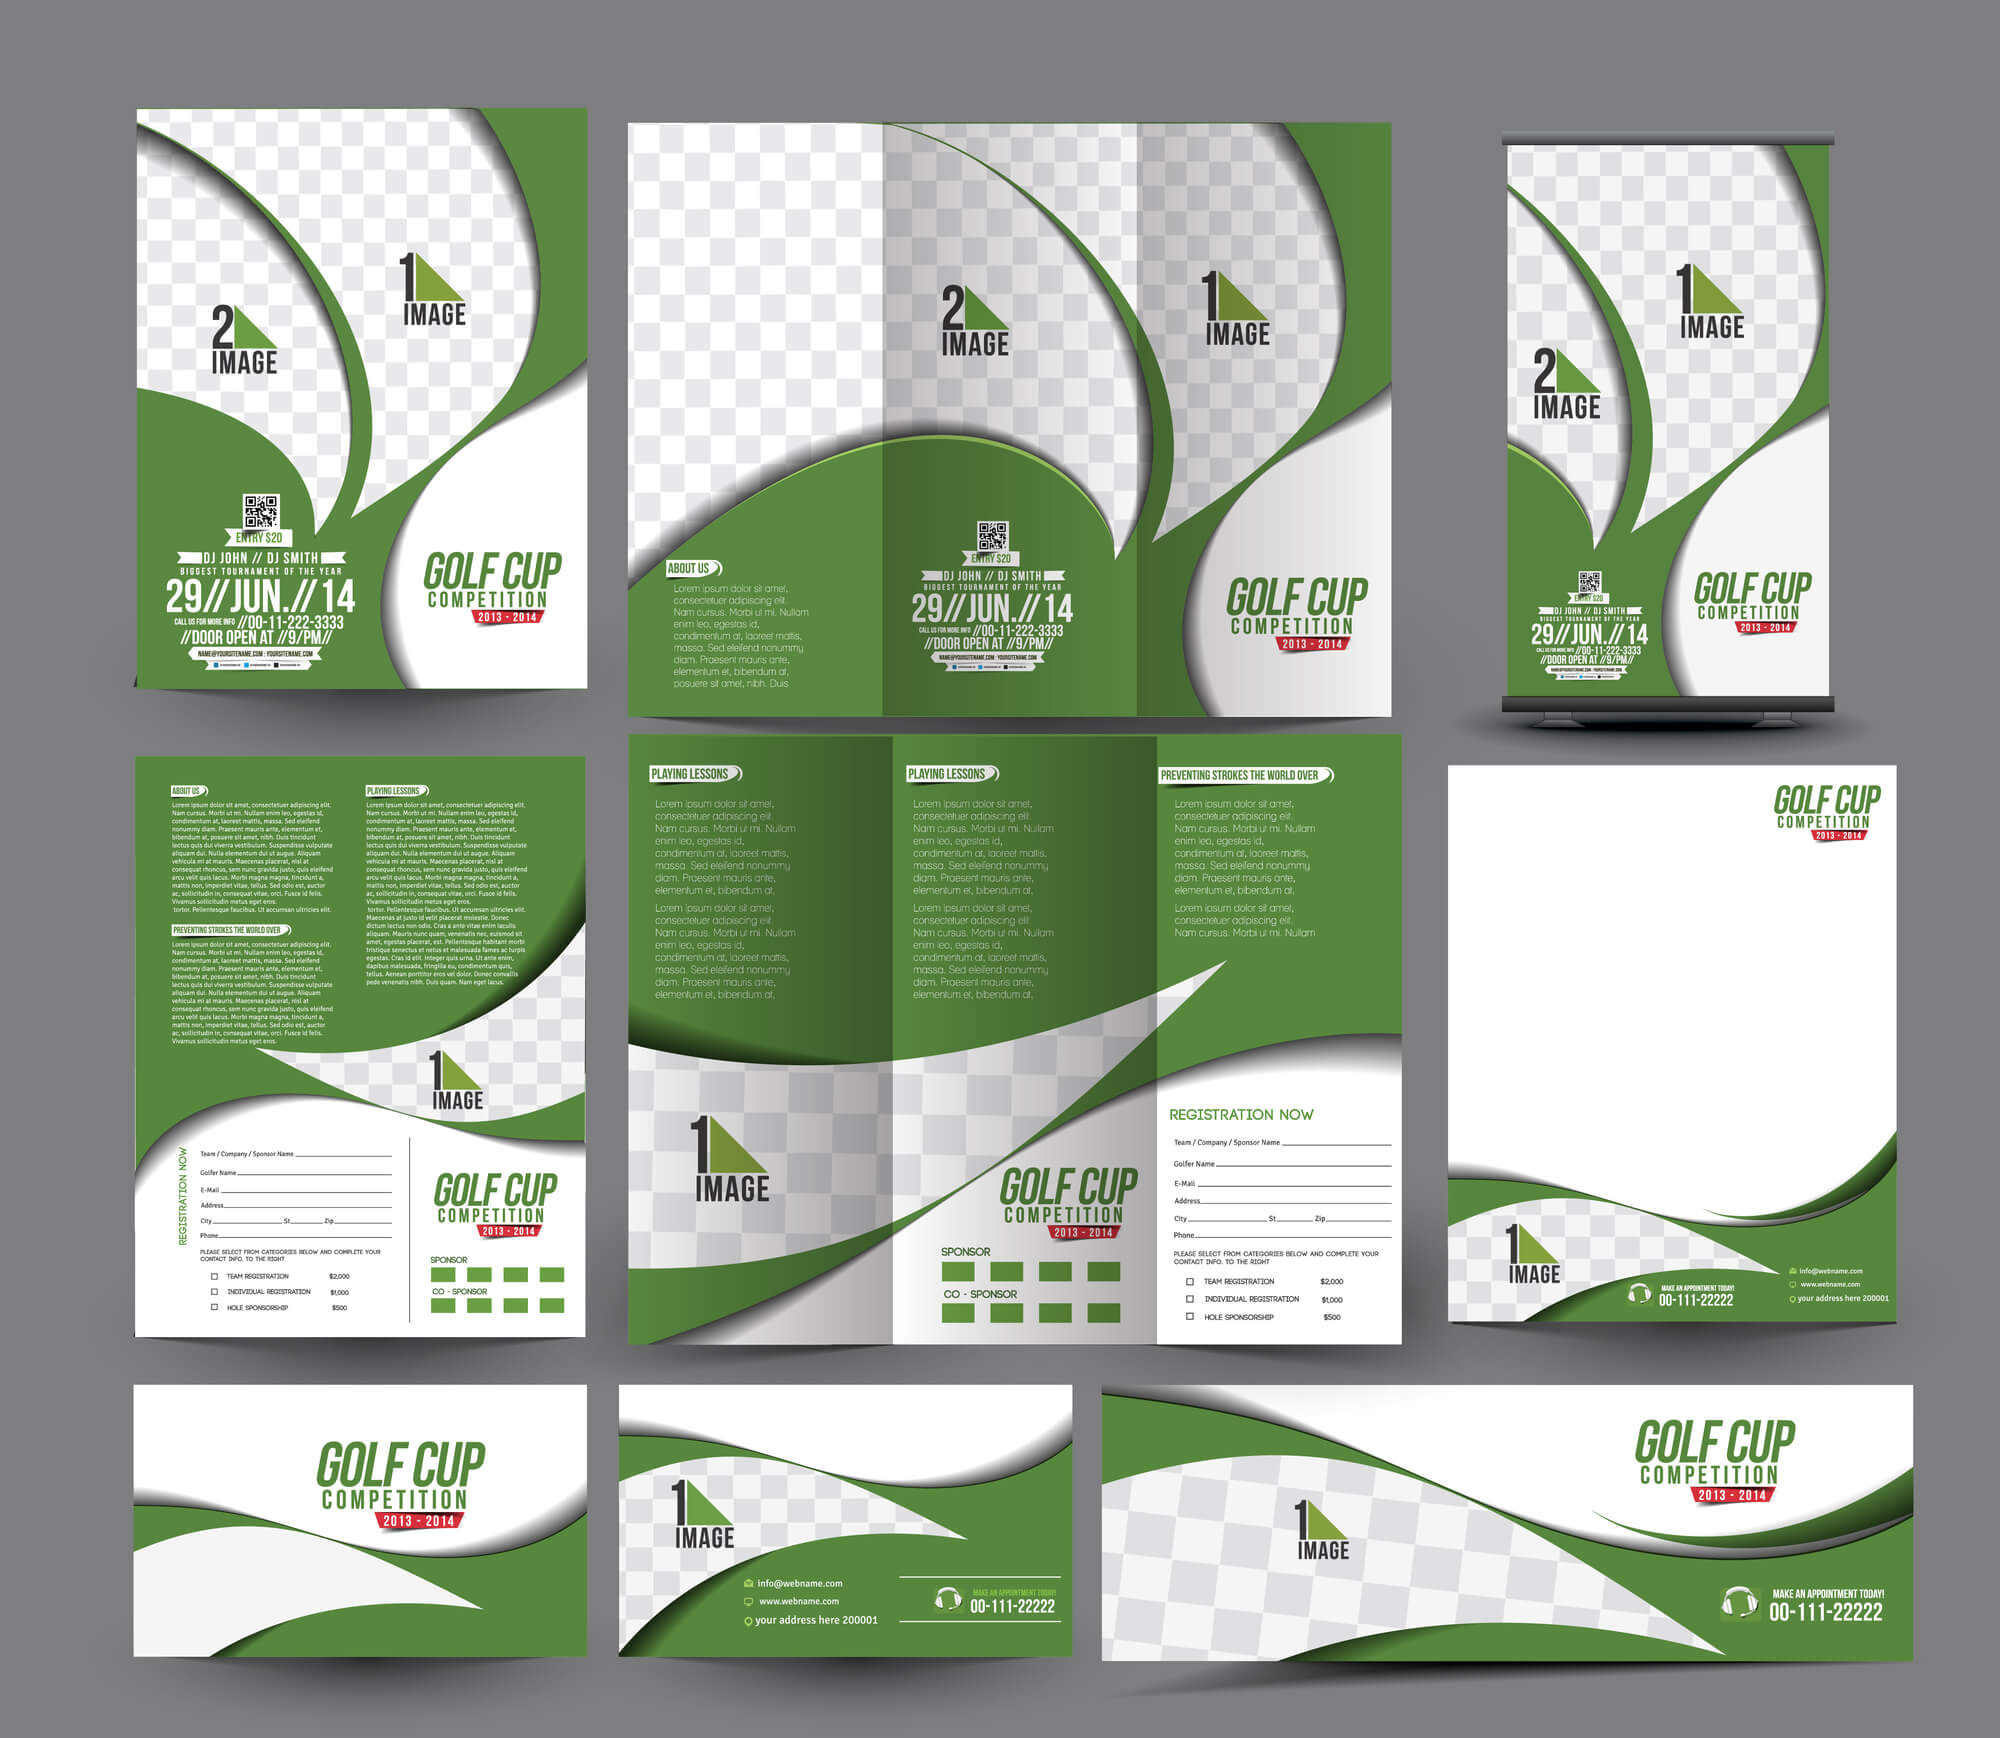 Offer various subscription style memberships Golf Club Marketing